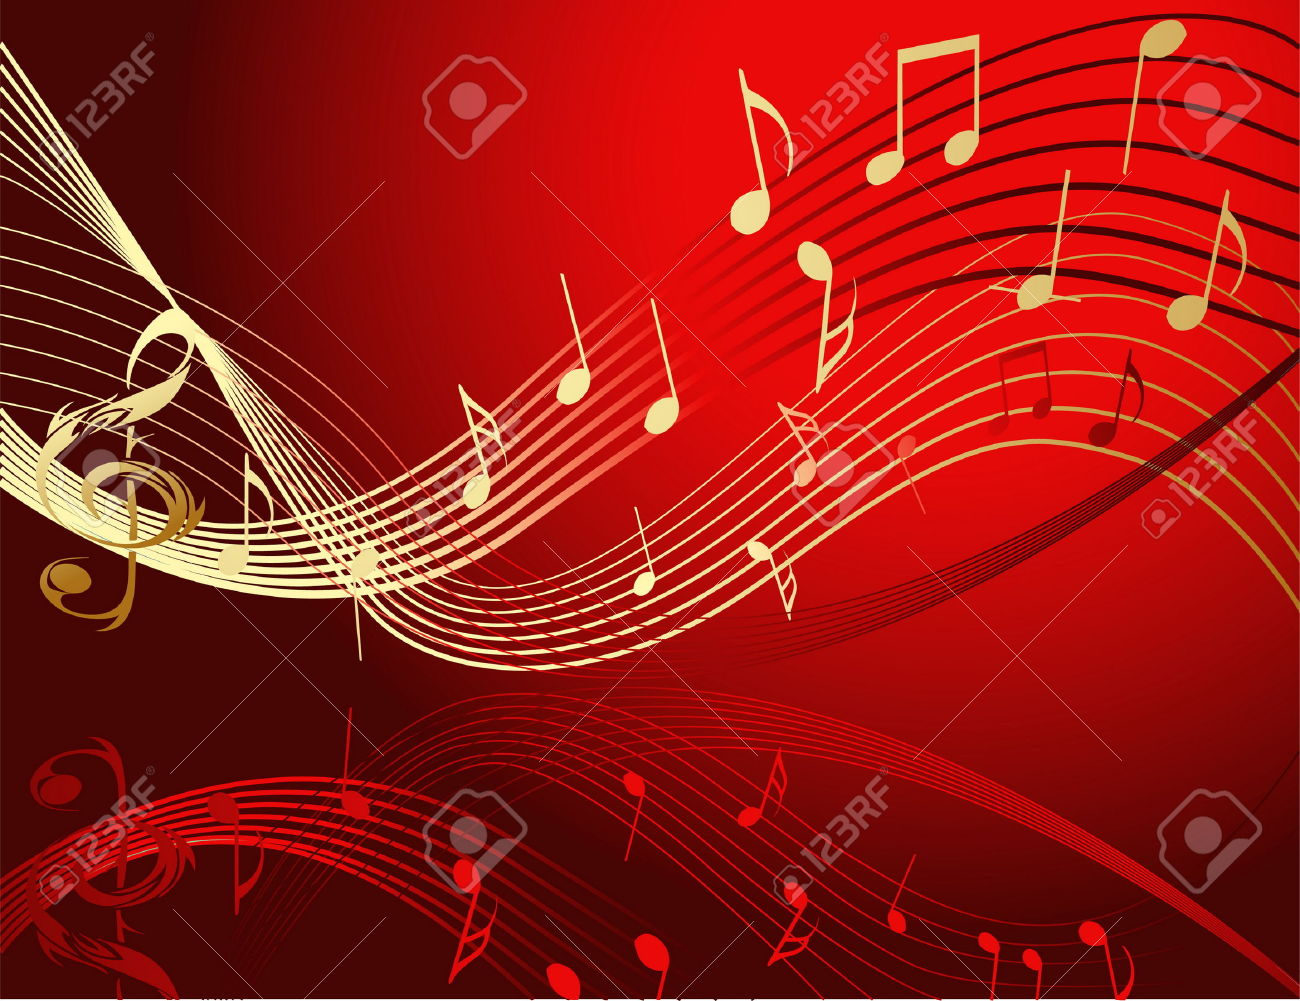 Colorful Music Notes In A Lin Hd Wallpaper Background Images: Music Background Image